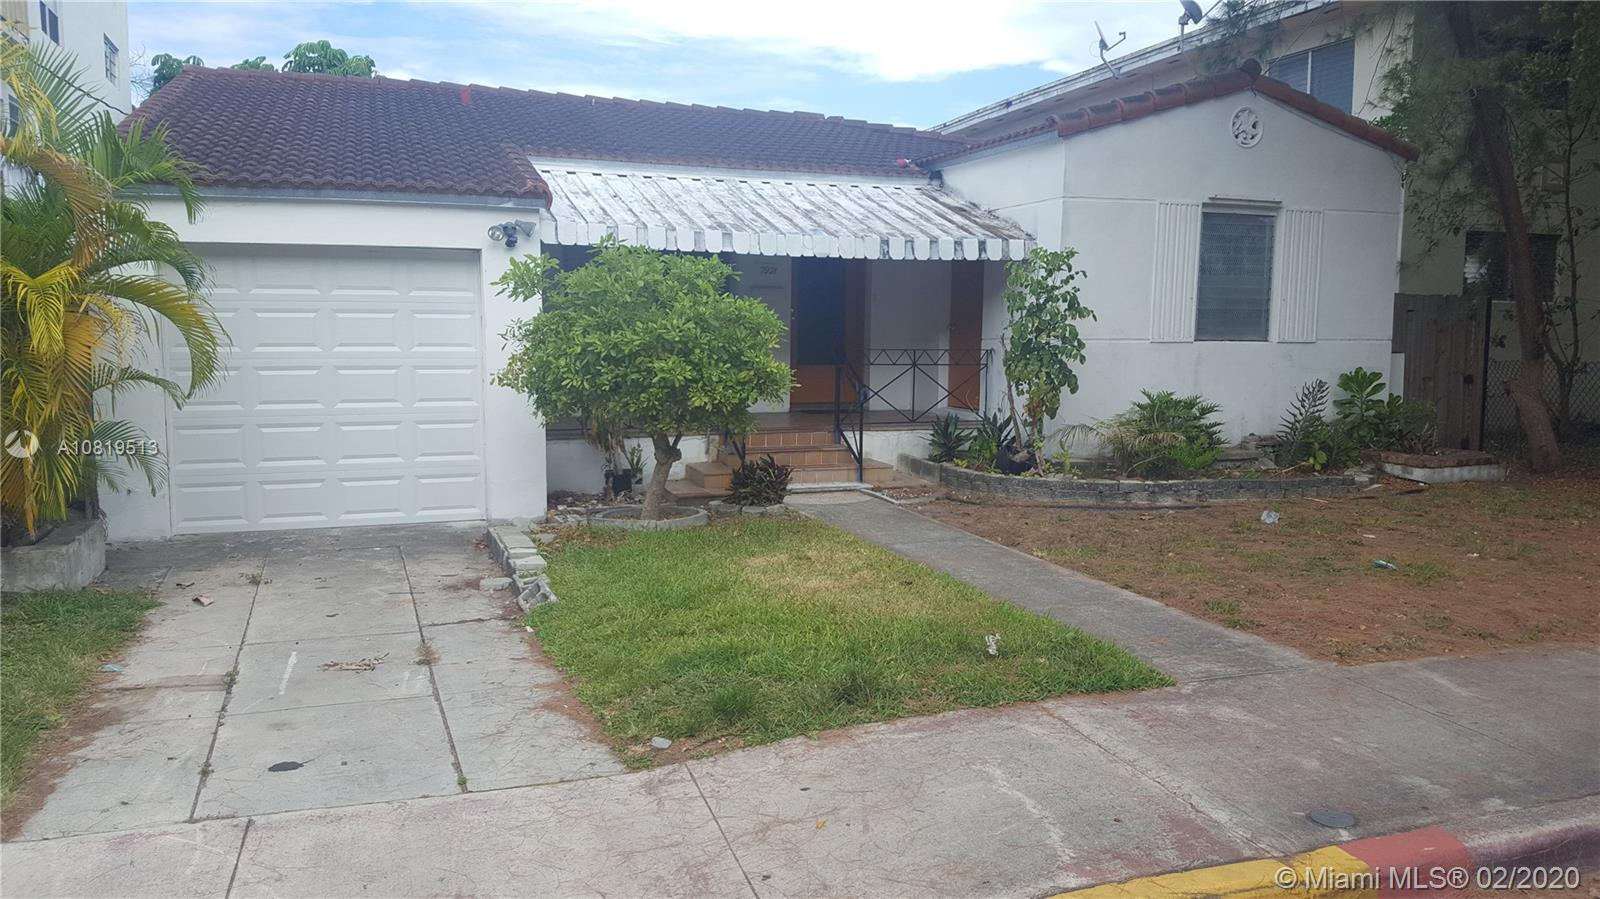 EXQUISITE AND BEAUTIFUL SINGLE HOUSE 3 BED 2 BATH ,ONE CAR GARAGE , HUGE BACK YARD ,LOCATED IN A VERY NICE NEIGHBORHOOD , CLOSE TO EXELENTS SCHOOLS , SHOPPING CENTERS AND JUST FEW BLOCKS FROM THE BEACH, BUSINESS OPPOTUNITY.